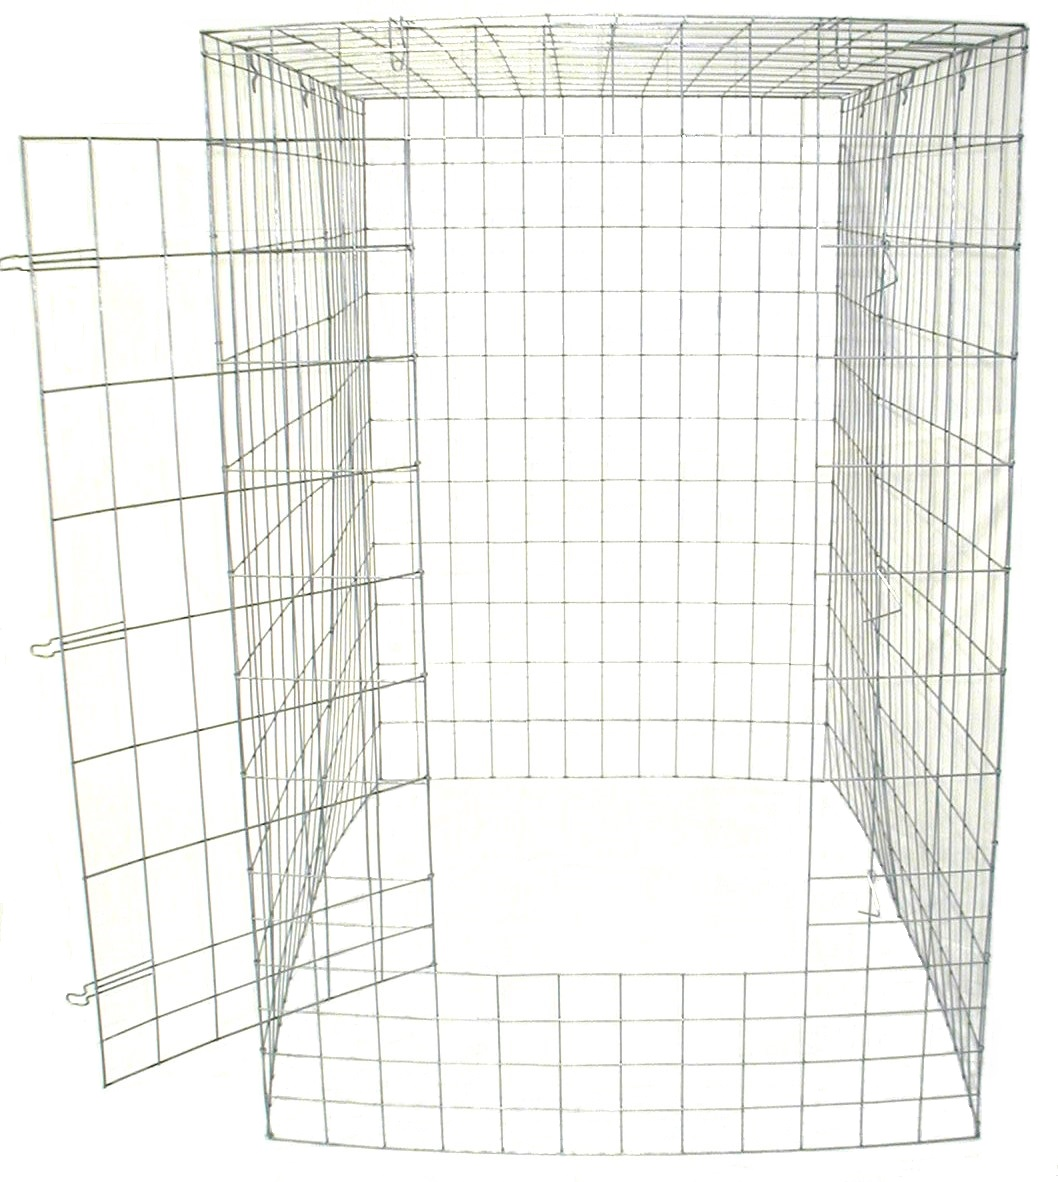 Large Fly Pen 10 12 Gauge Wire Galvanized Extra Wire At